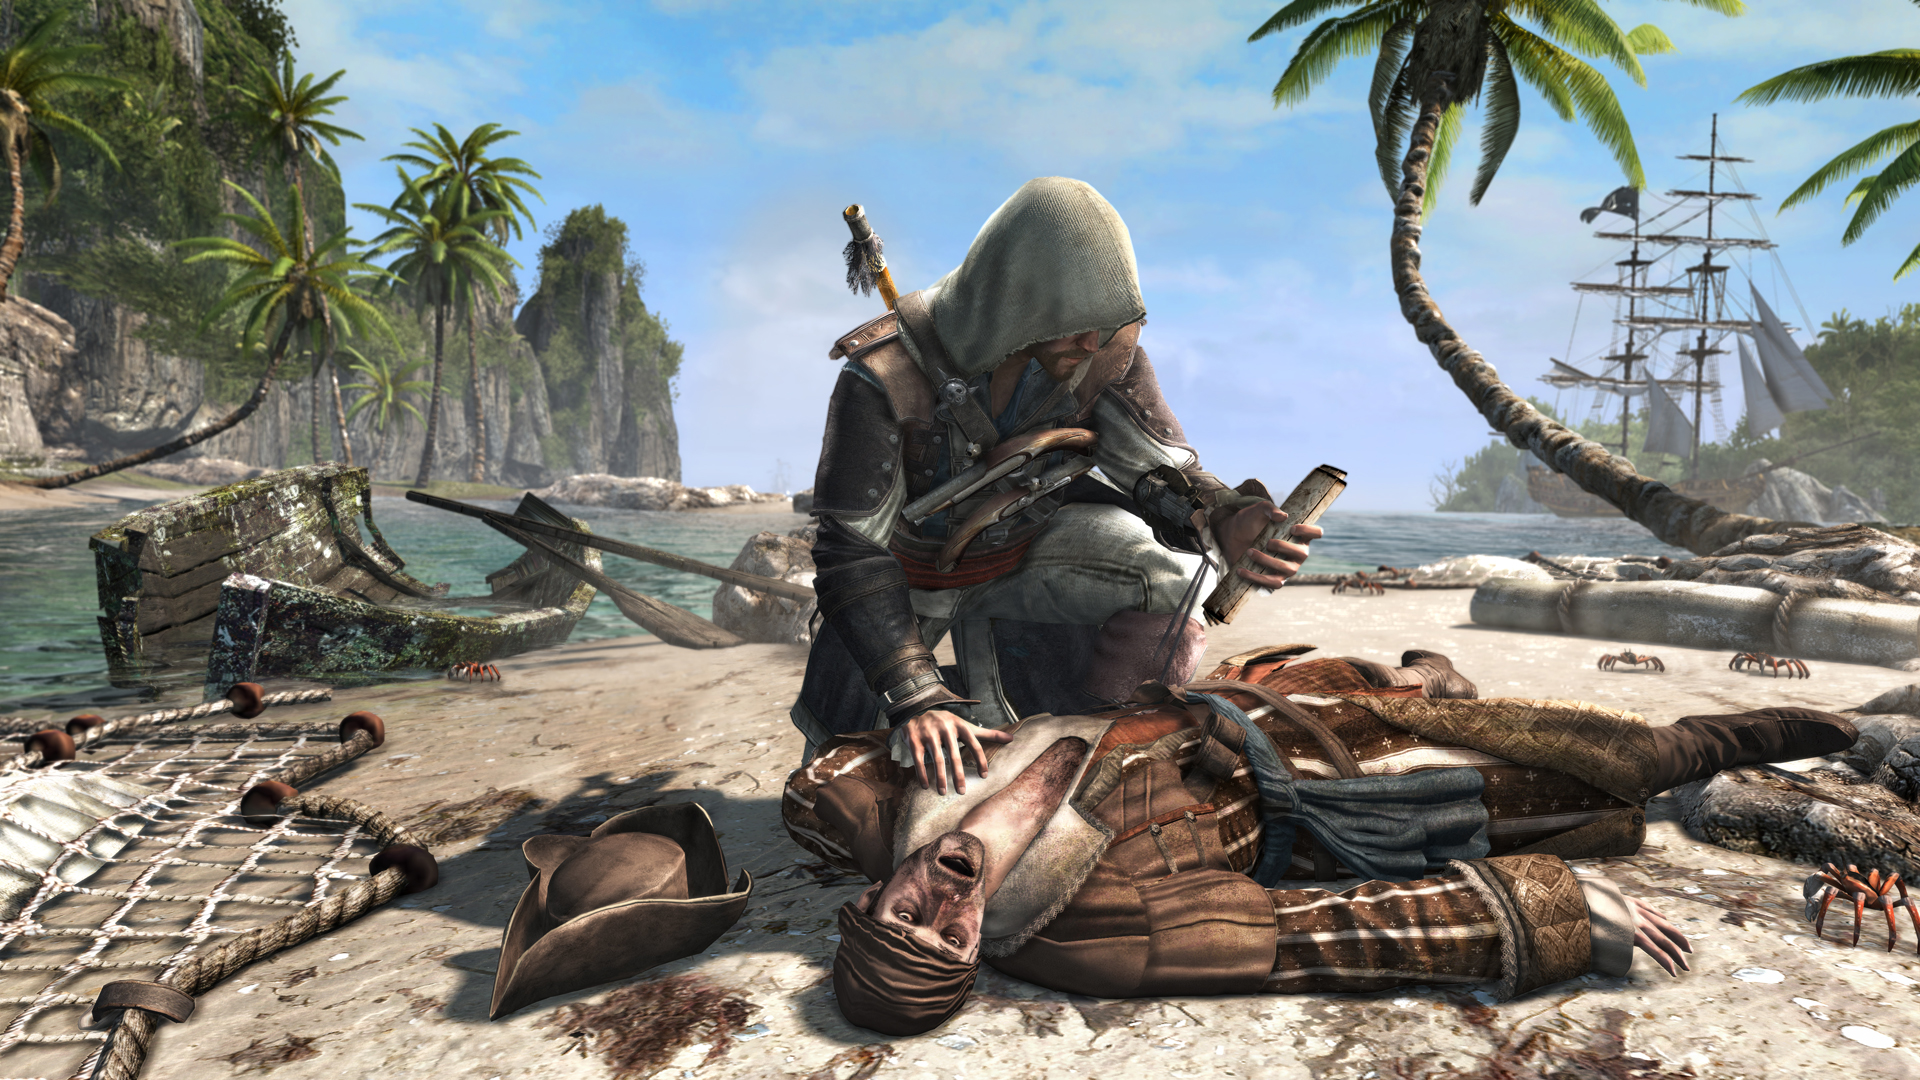 Assassin's Creed 4 Walkthrough: How to Complete Sequences 04, 05 and 06 |  USgamer